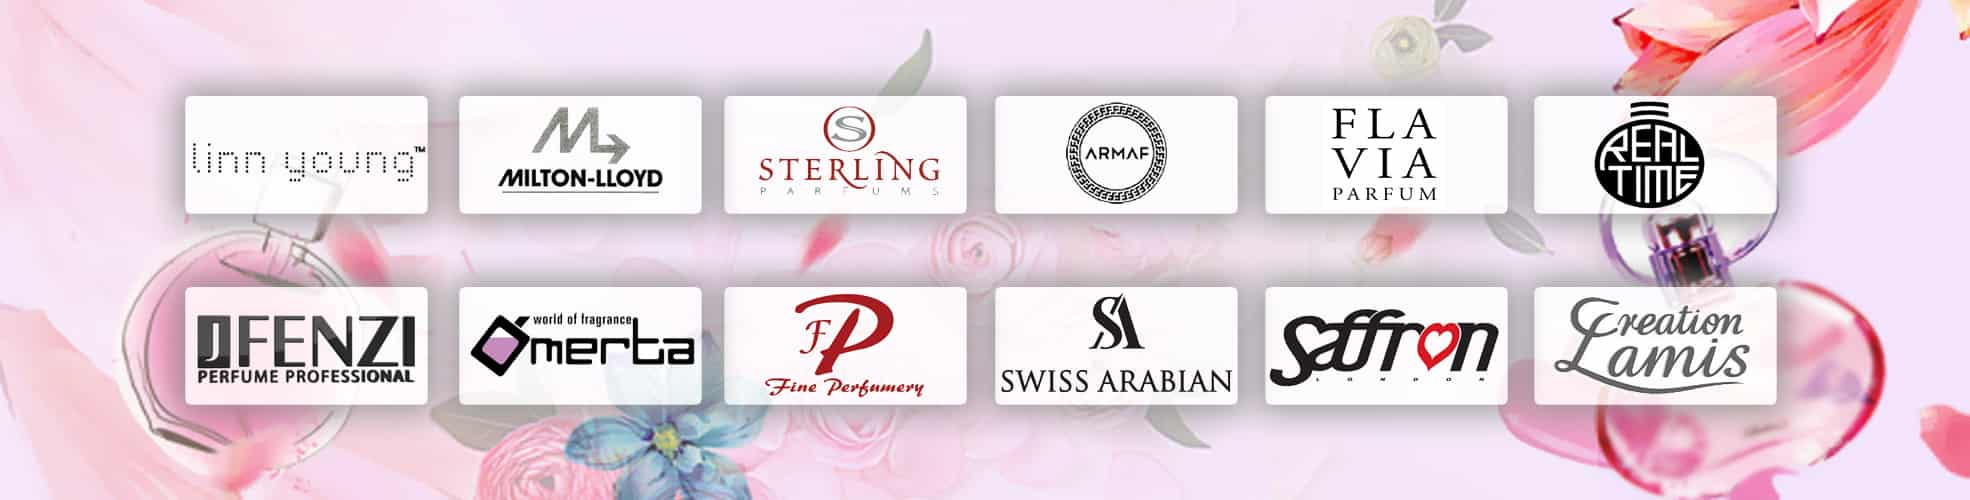 Linn, young, Milton Lloyd, Sterling Parfums, ARMAF, FLAVIA Parfum, Real Time, JFenzi Perfume Professional, Omerta World of Fragrance, Fine Perfumery, Swiss Arabian, SAPIL, Saffron London, Creation Lamis, Perfume, Fragrance, Apollo Wholesale.